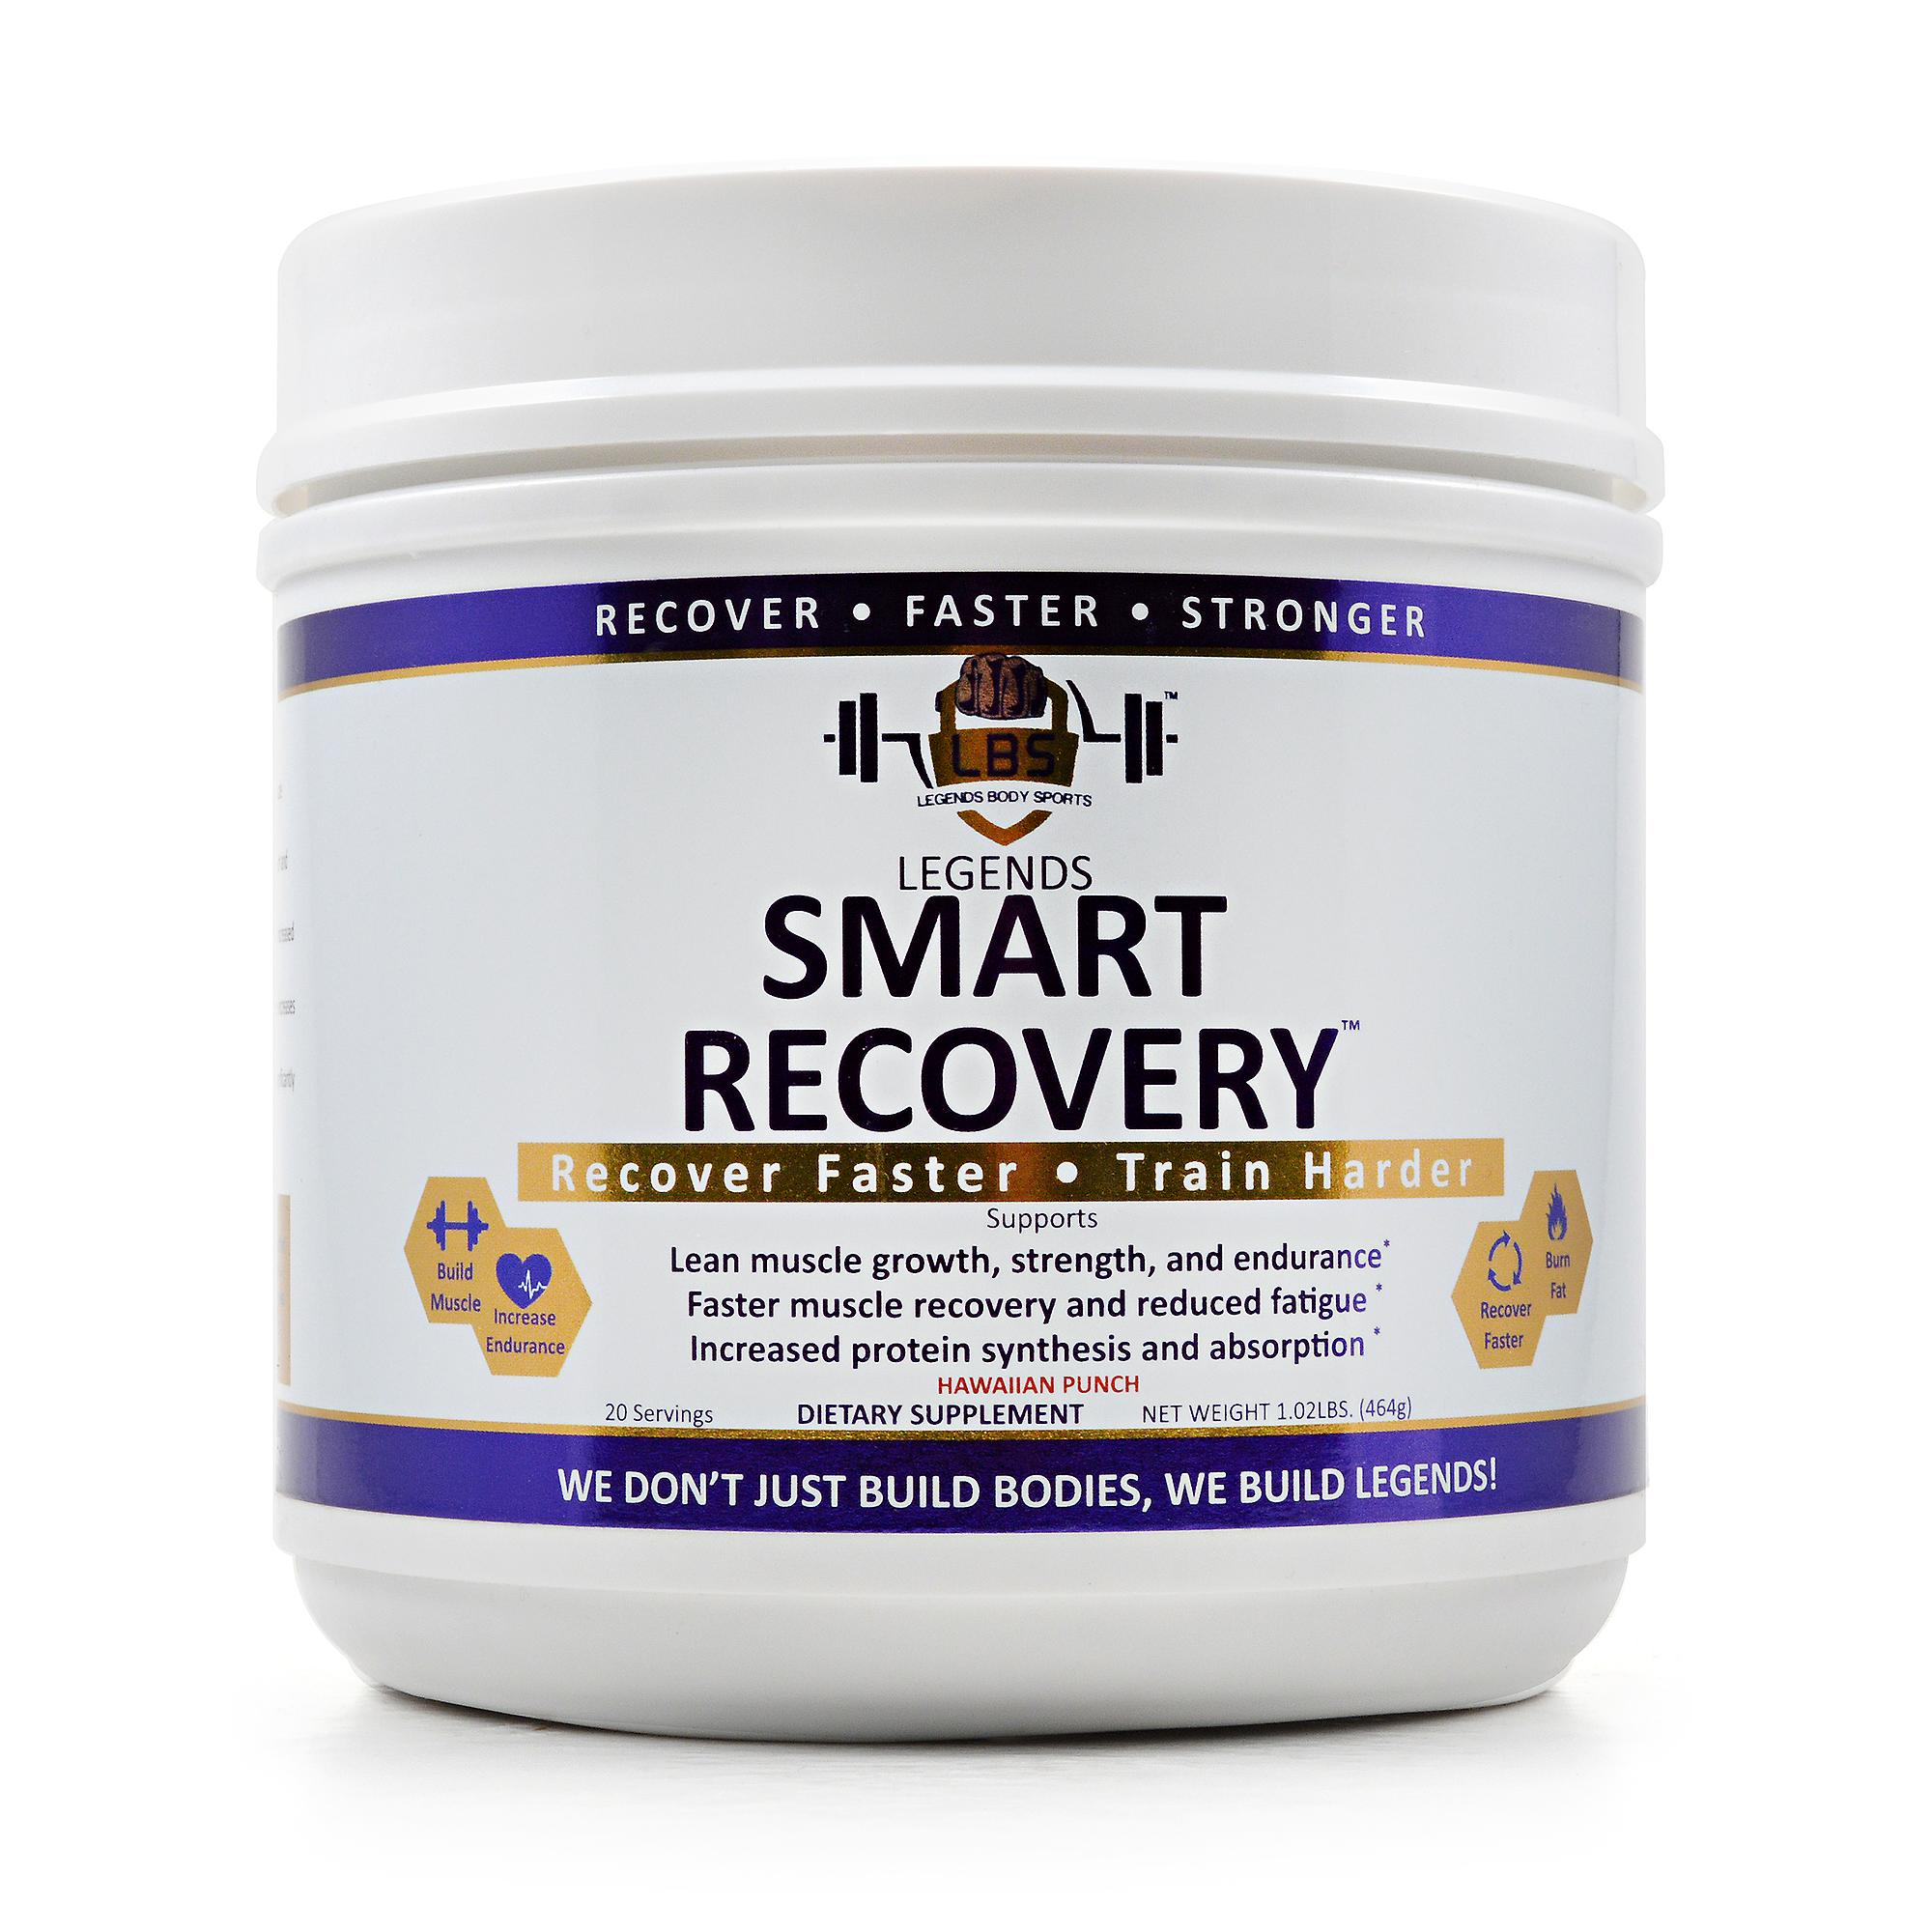 legends body sports smart recovery review labdoor